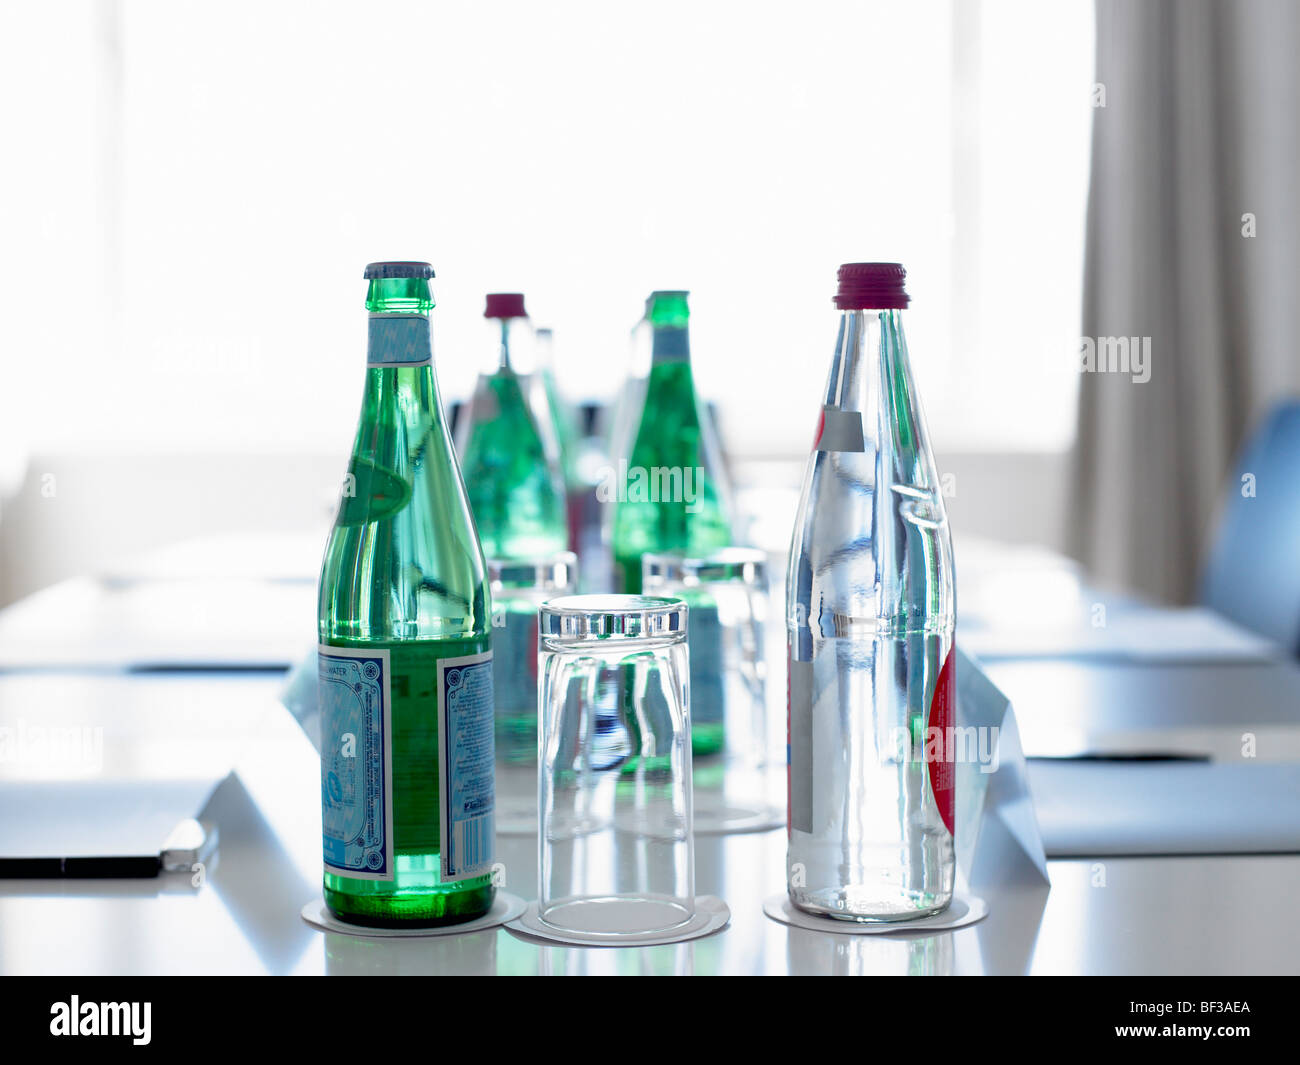 Bottles of water in a conference room - Stock Image